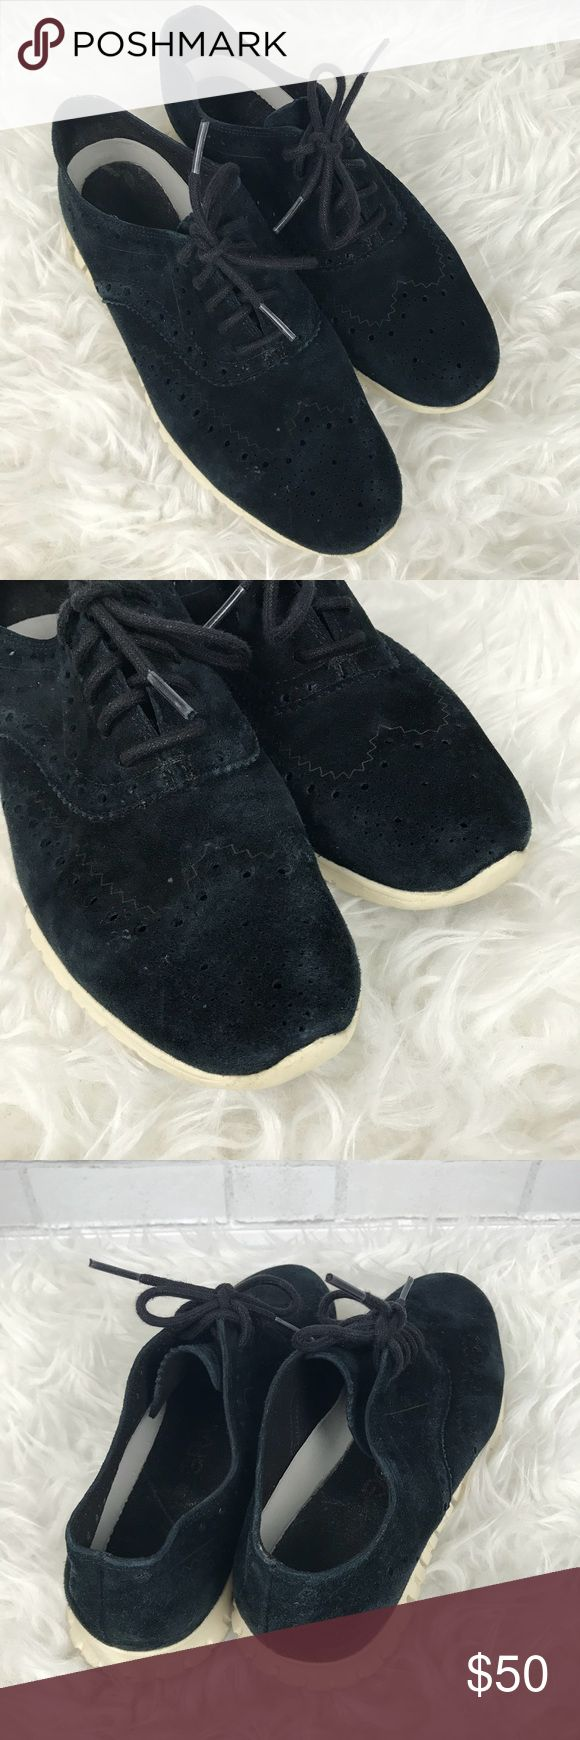 Cole Haan Zerogrand Suede Wingtip Oxford Sneakers Good condition Cole Haan Zero Grand Blue Suede Wingtip Oxford Sneakers. Size 6.5. Navy blue suede with white rubber soles. Wingtip design with brogue detailing. Adjustable lace ups. No major flaws. No trades, offers welcome. Cole Haan Shoes Sneakers